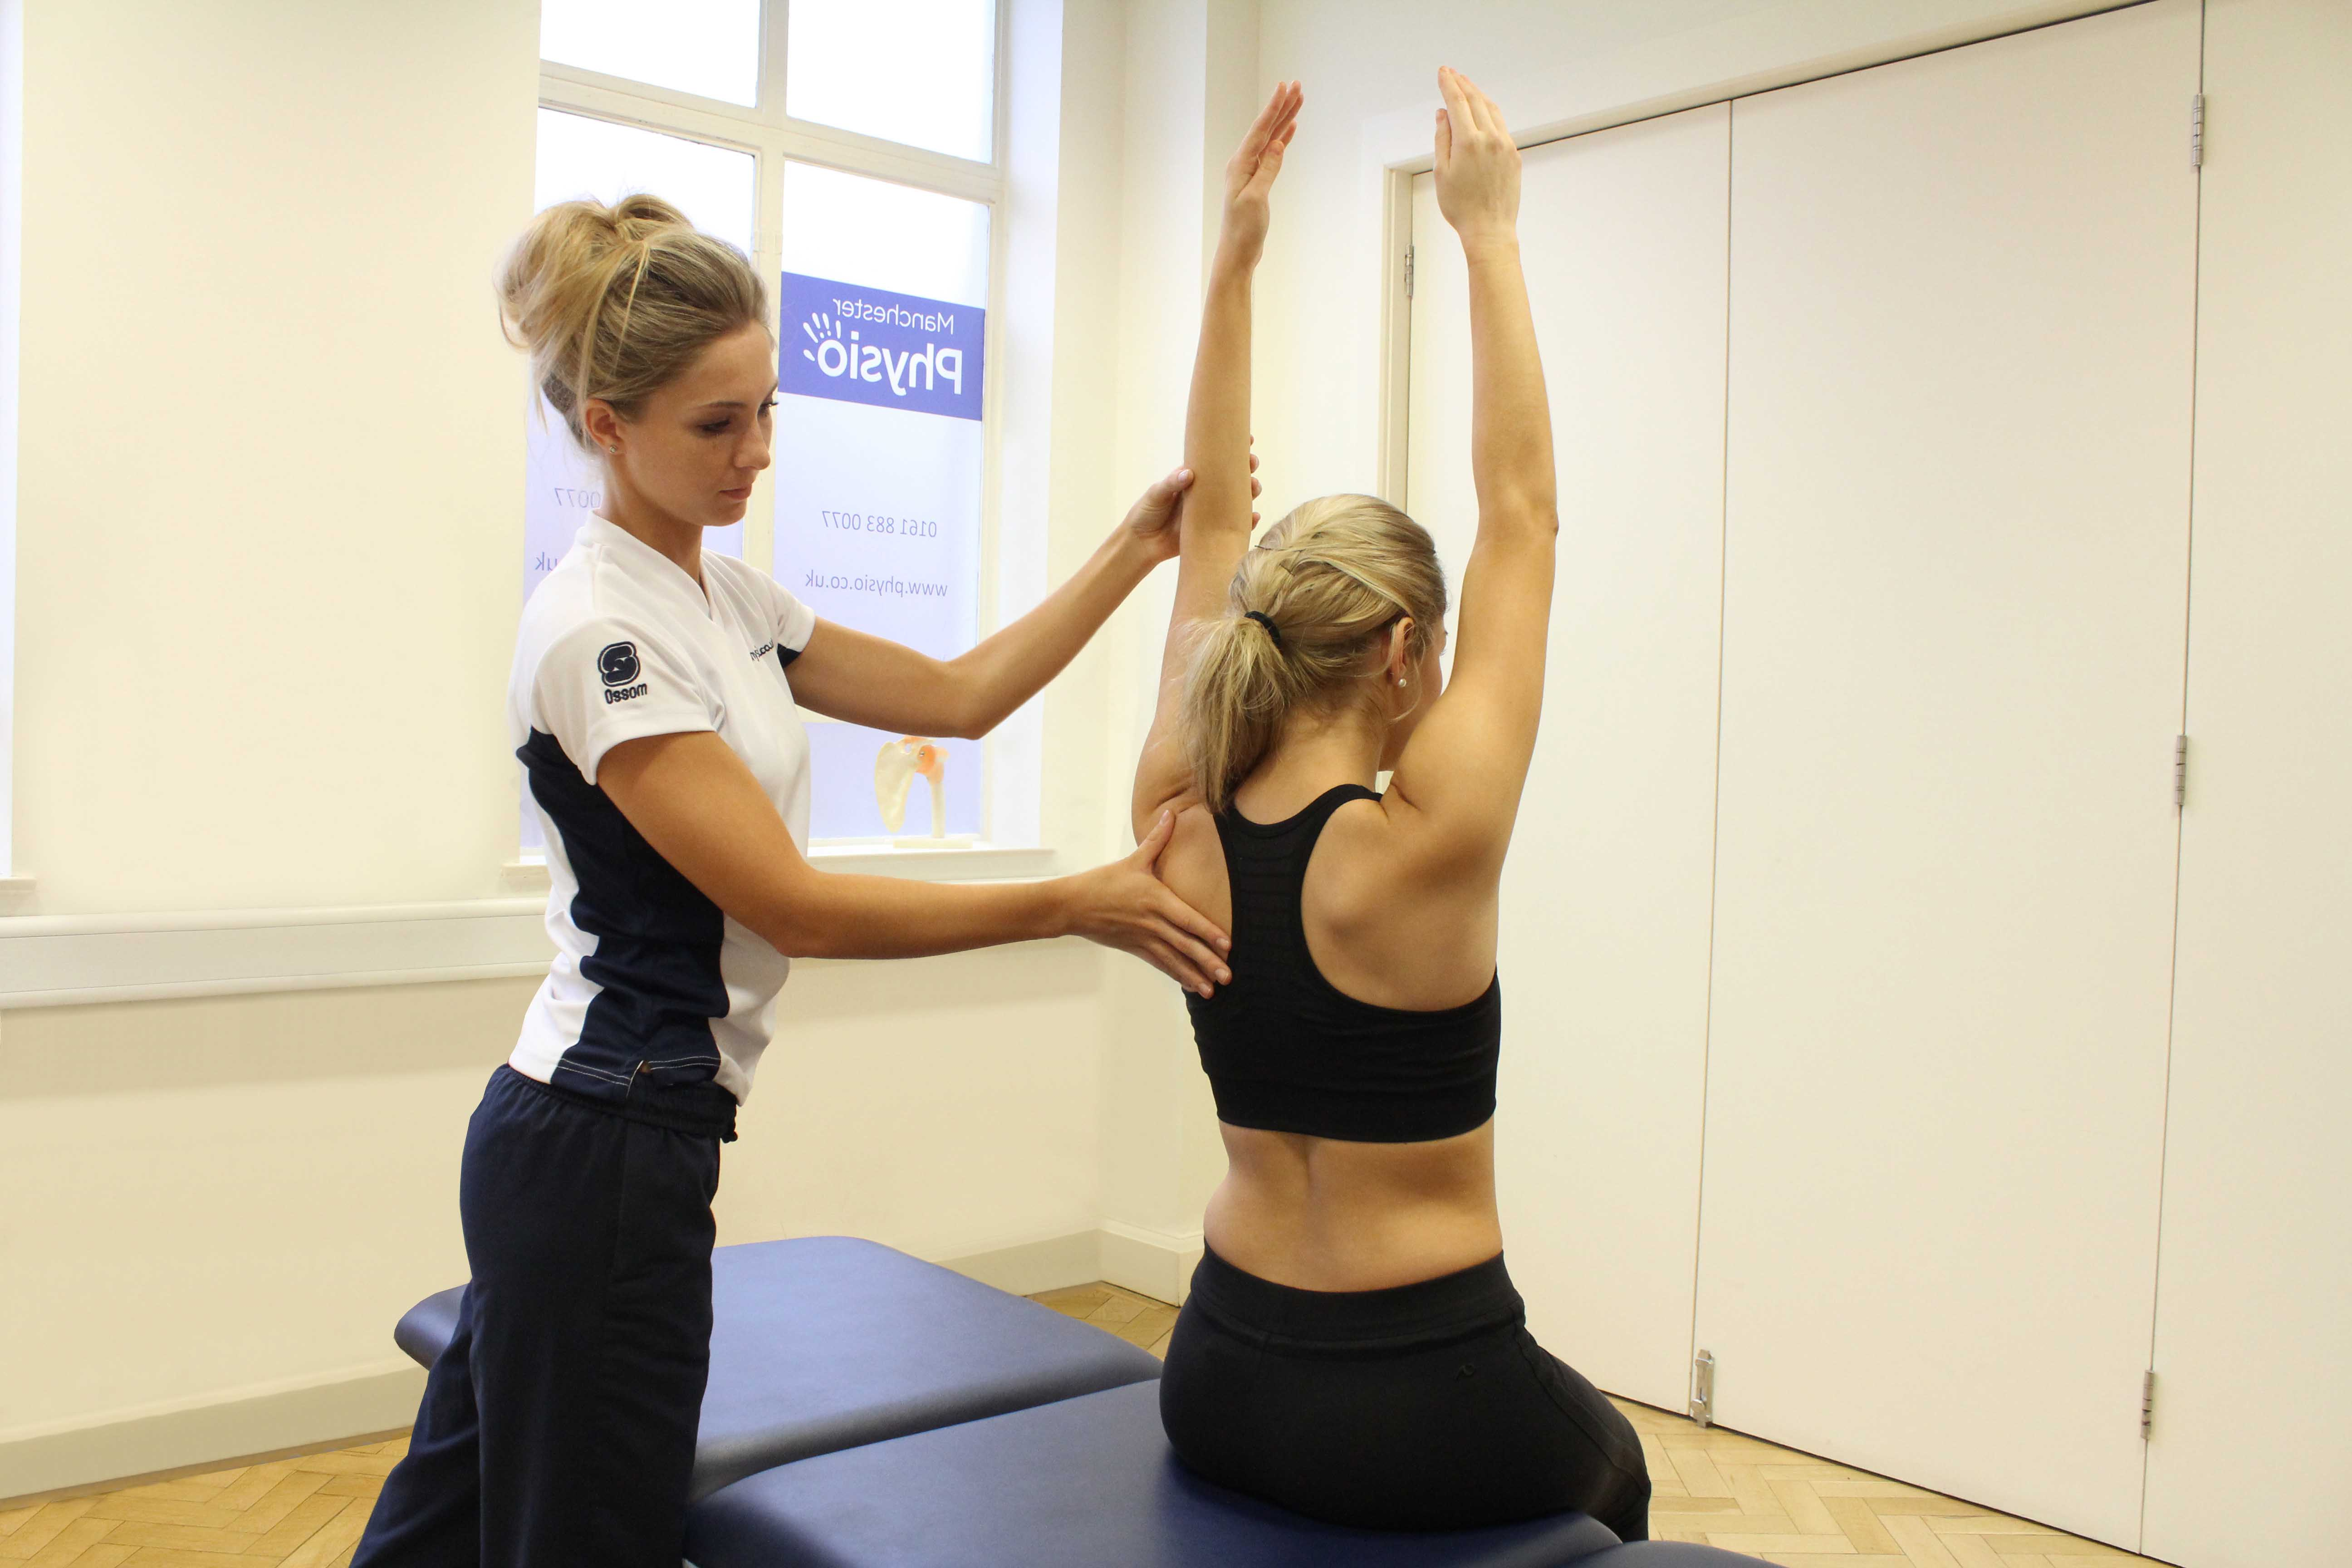 Specialist MSK therapist assessing scapula position and movement for any deformities